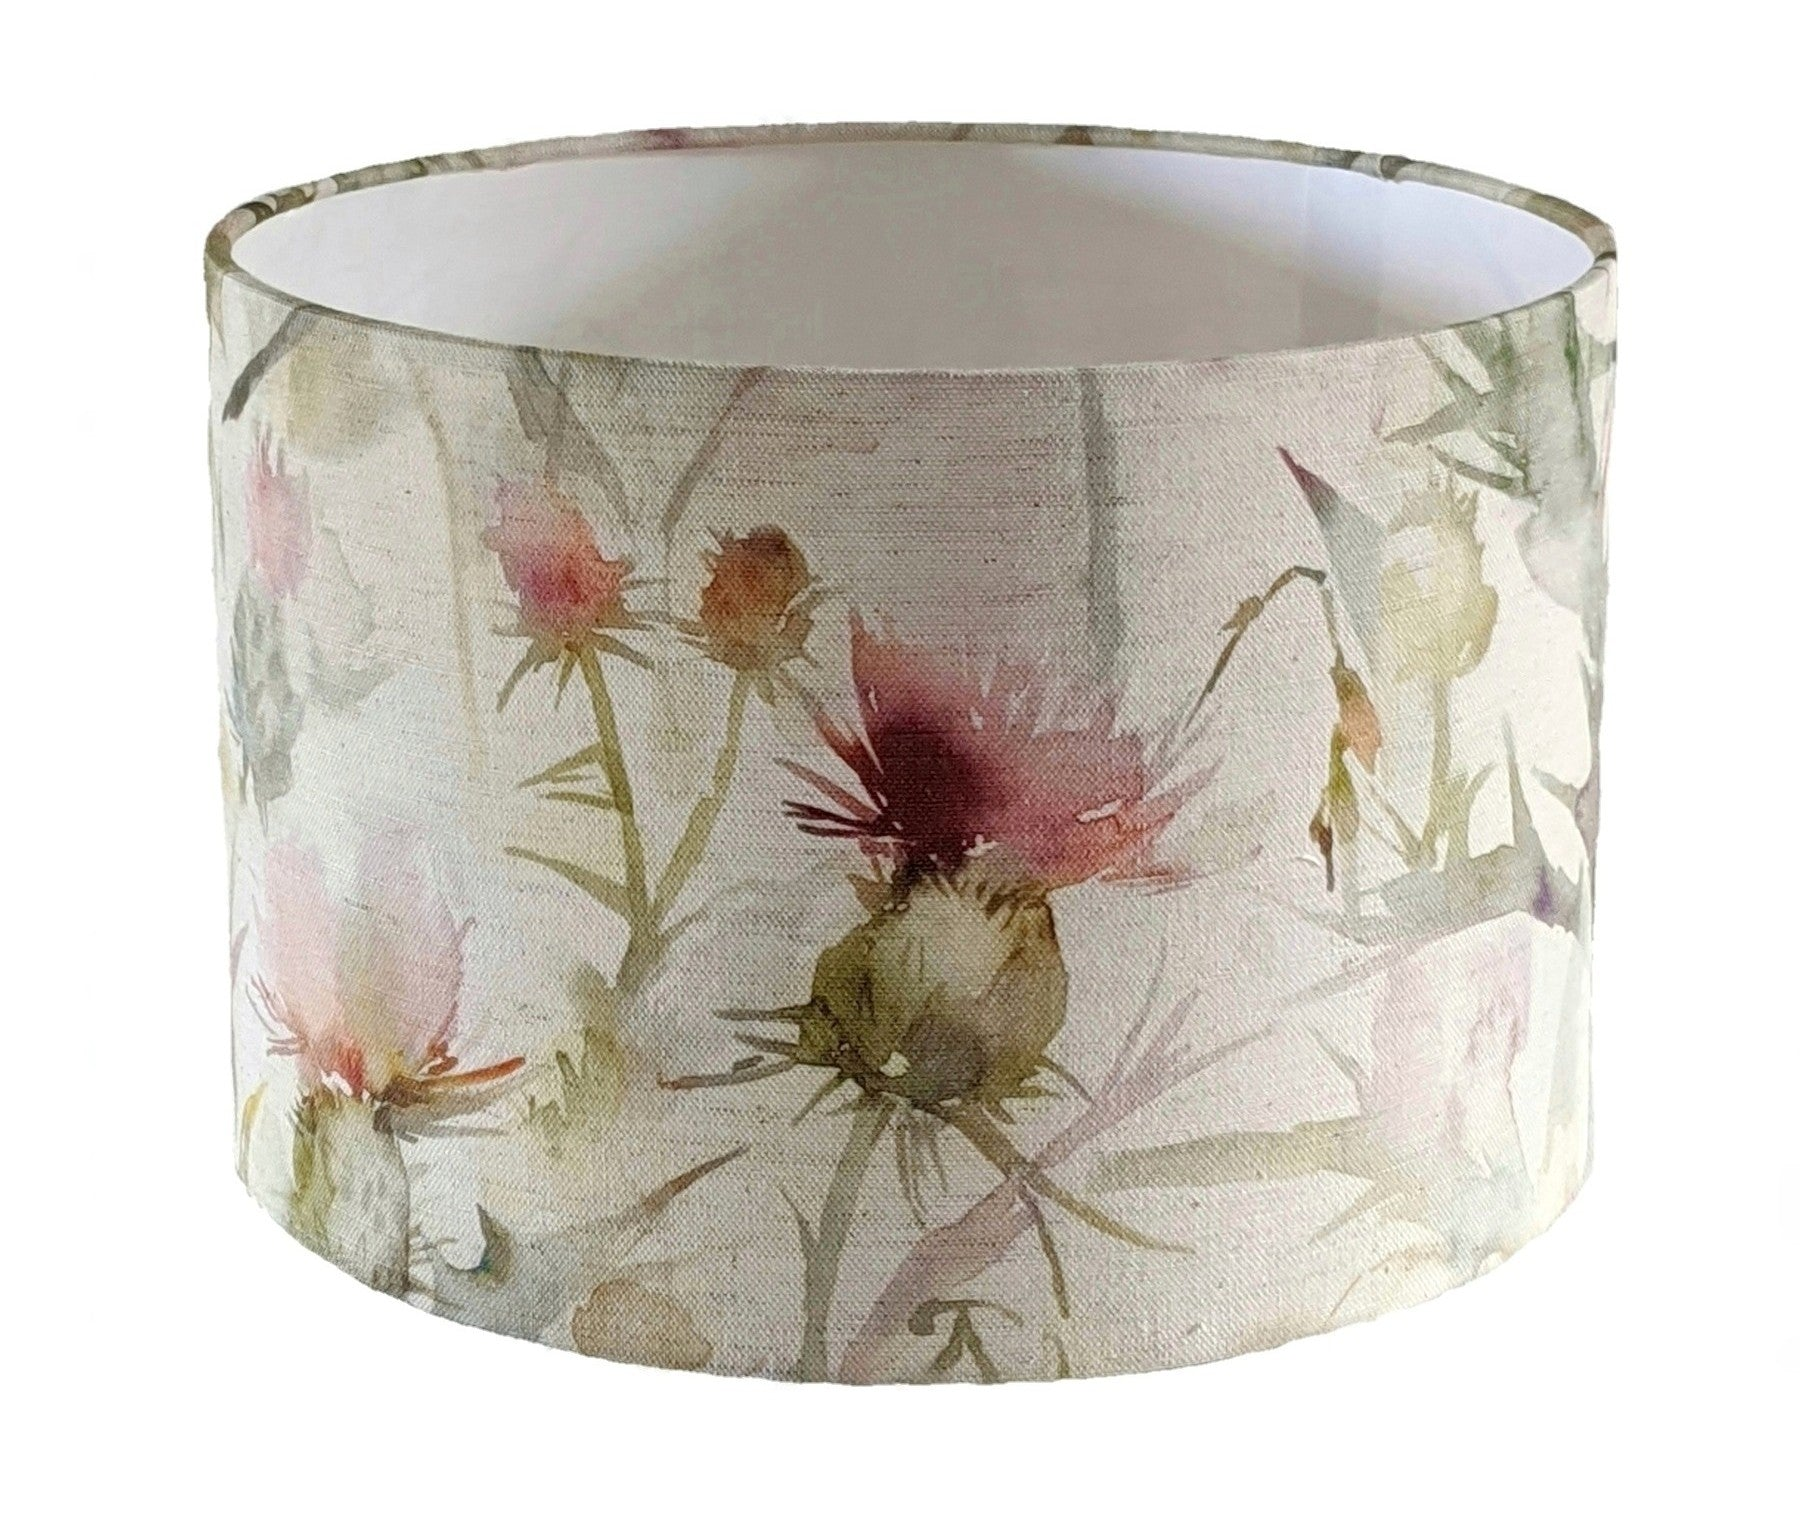 Voyage Circium russet thistle lampshade for a ceiling pendant -  20cm, 30cm and 40cm